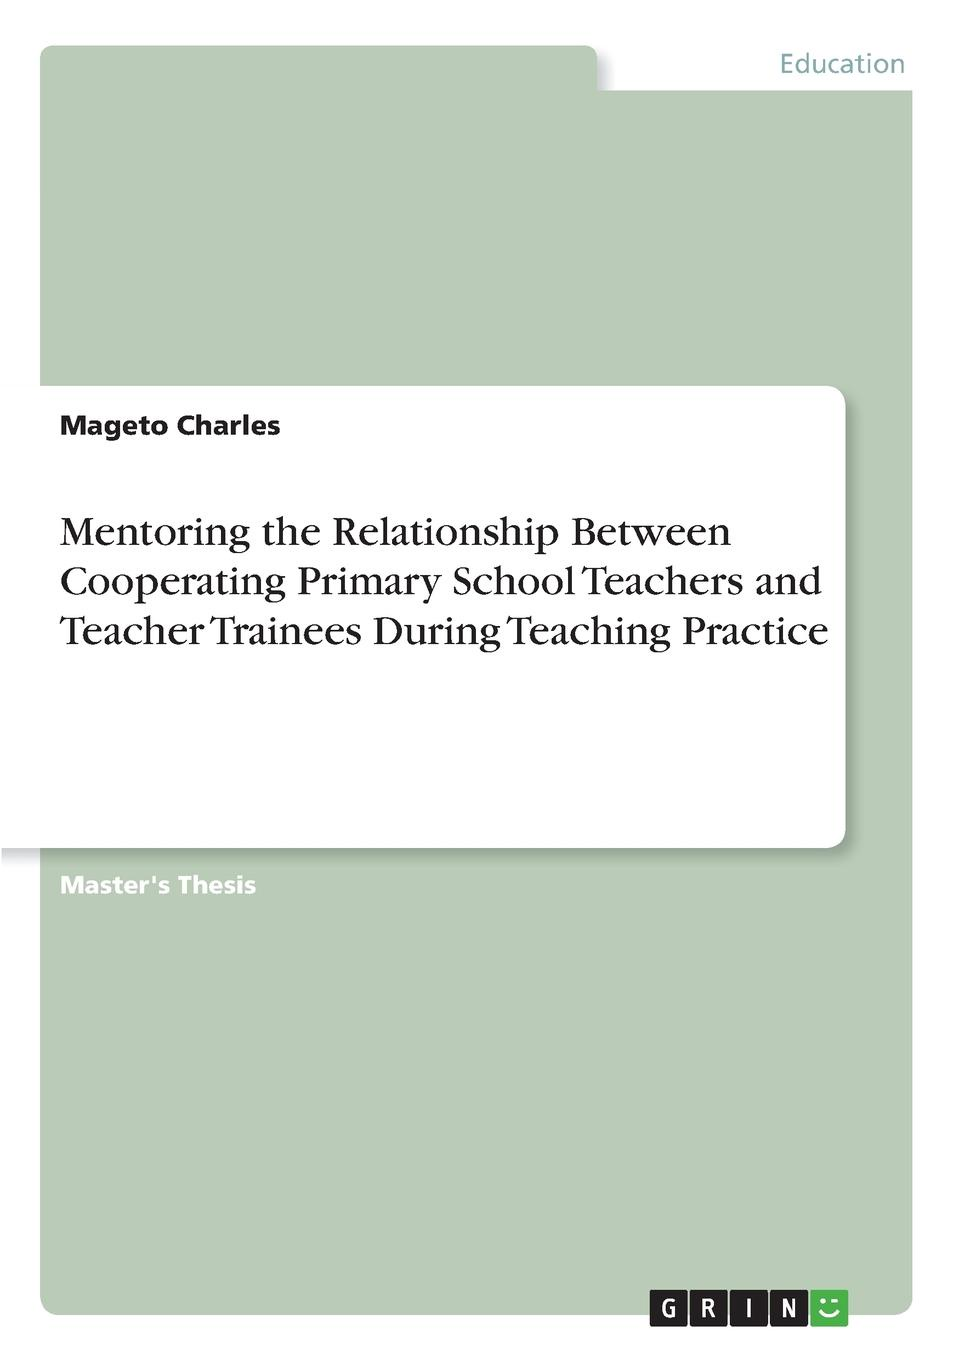 Mageto Charles Mentoring the Relationship Between Cooperating Primary School Teachers and Teacher Trainees During Teaching Practice primary readers gulliver in lilliput teacher s book